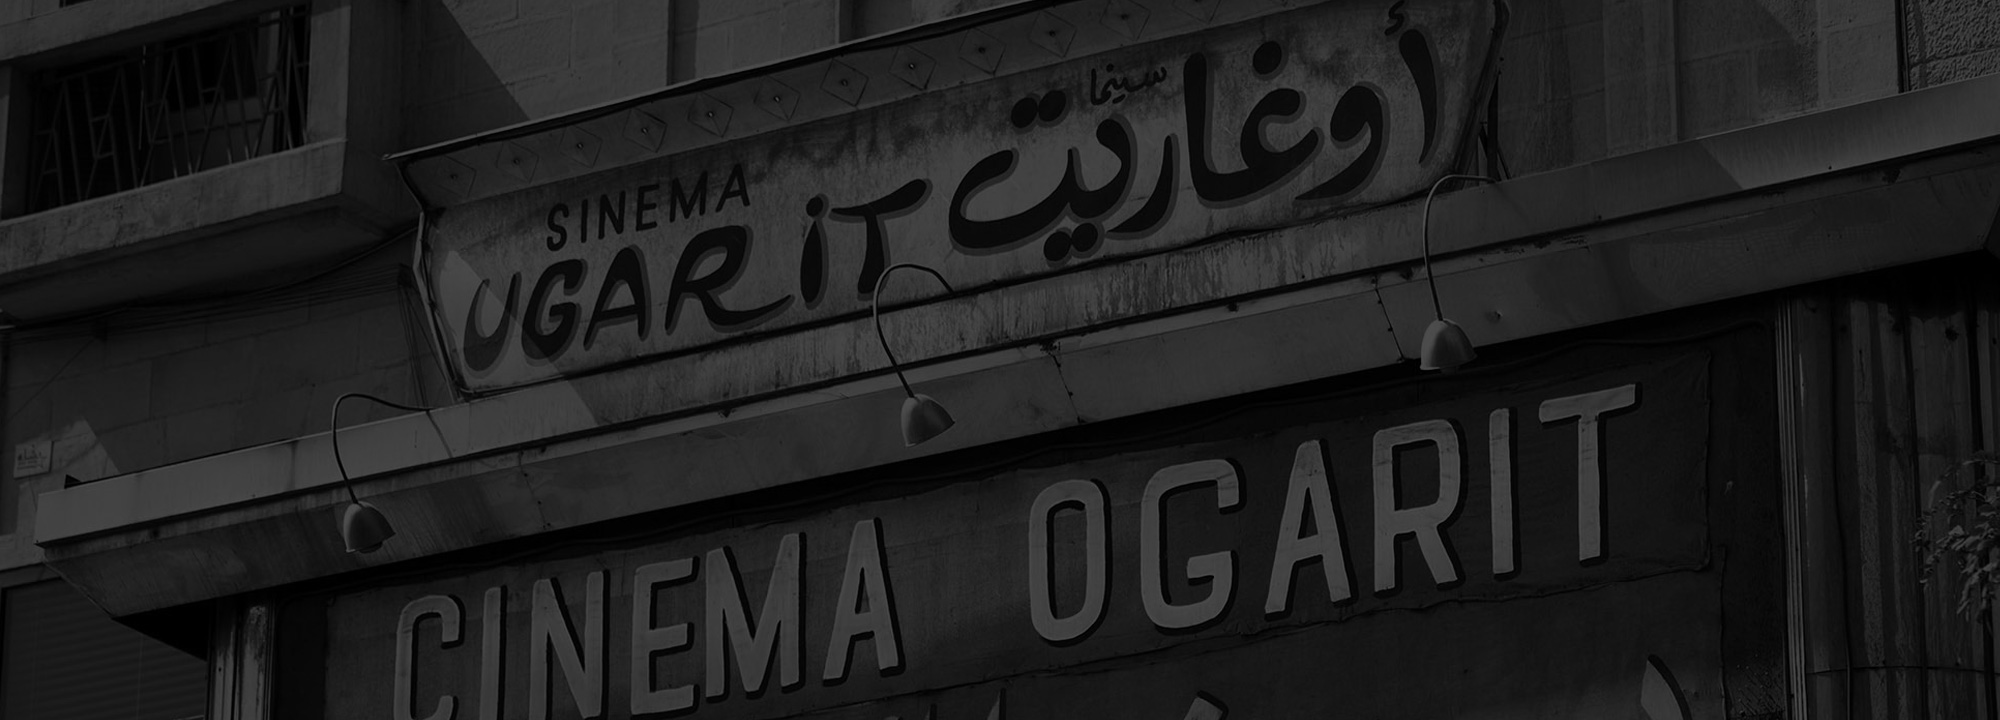 Cinema Ogarit